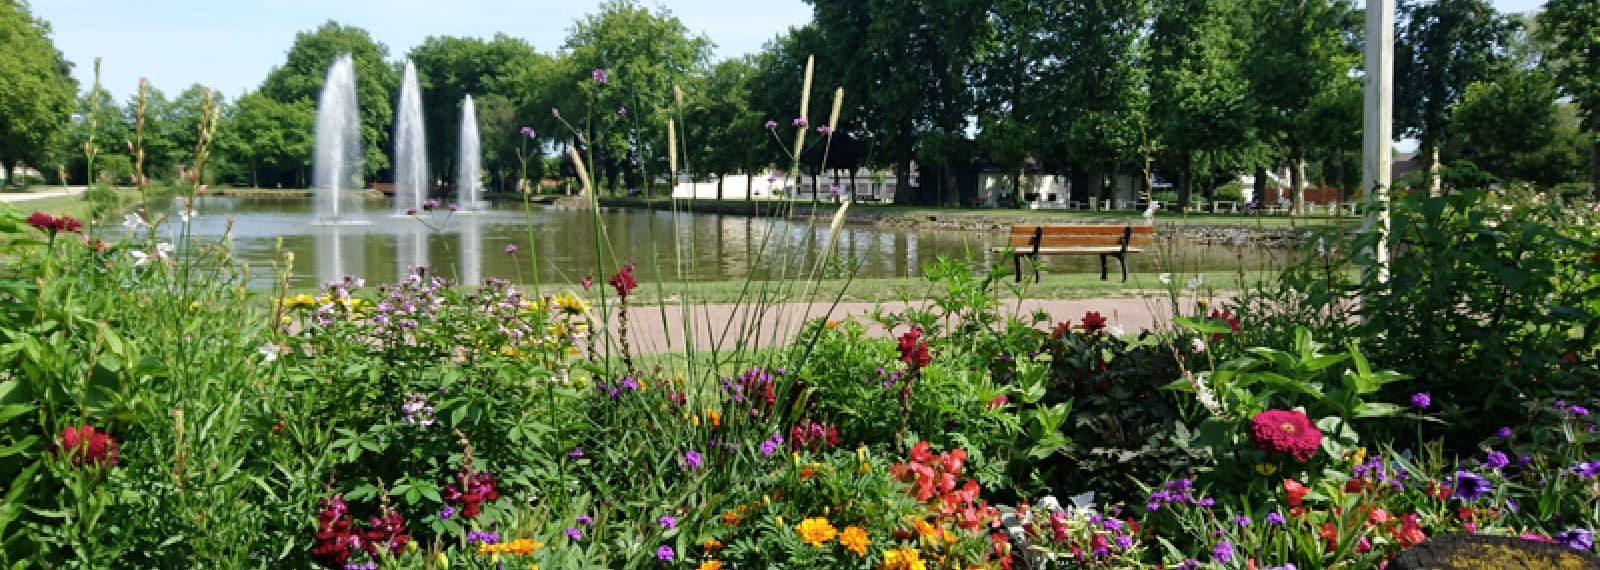 sologne aire camping car lamotte beuvron